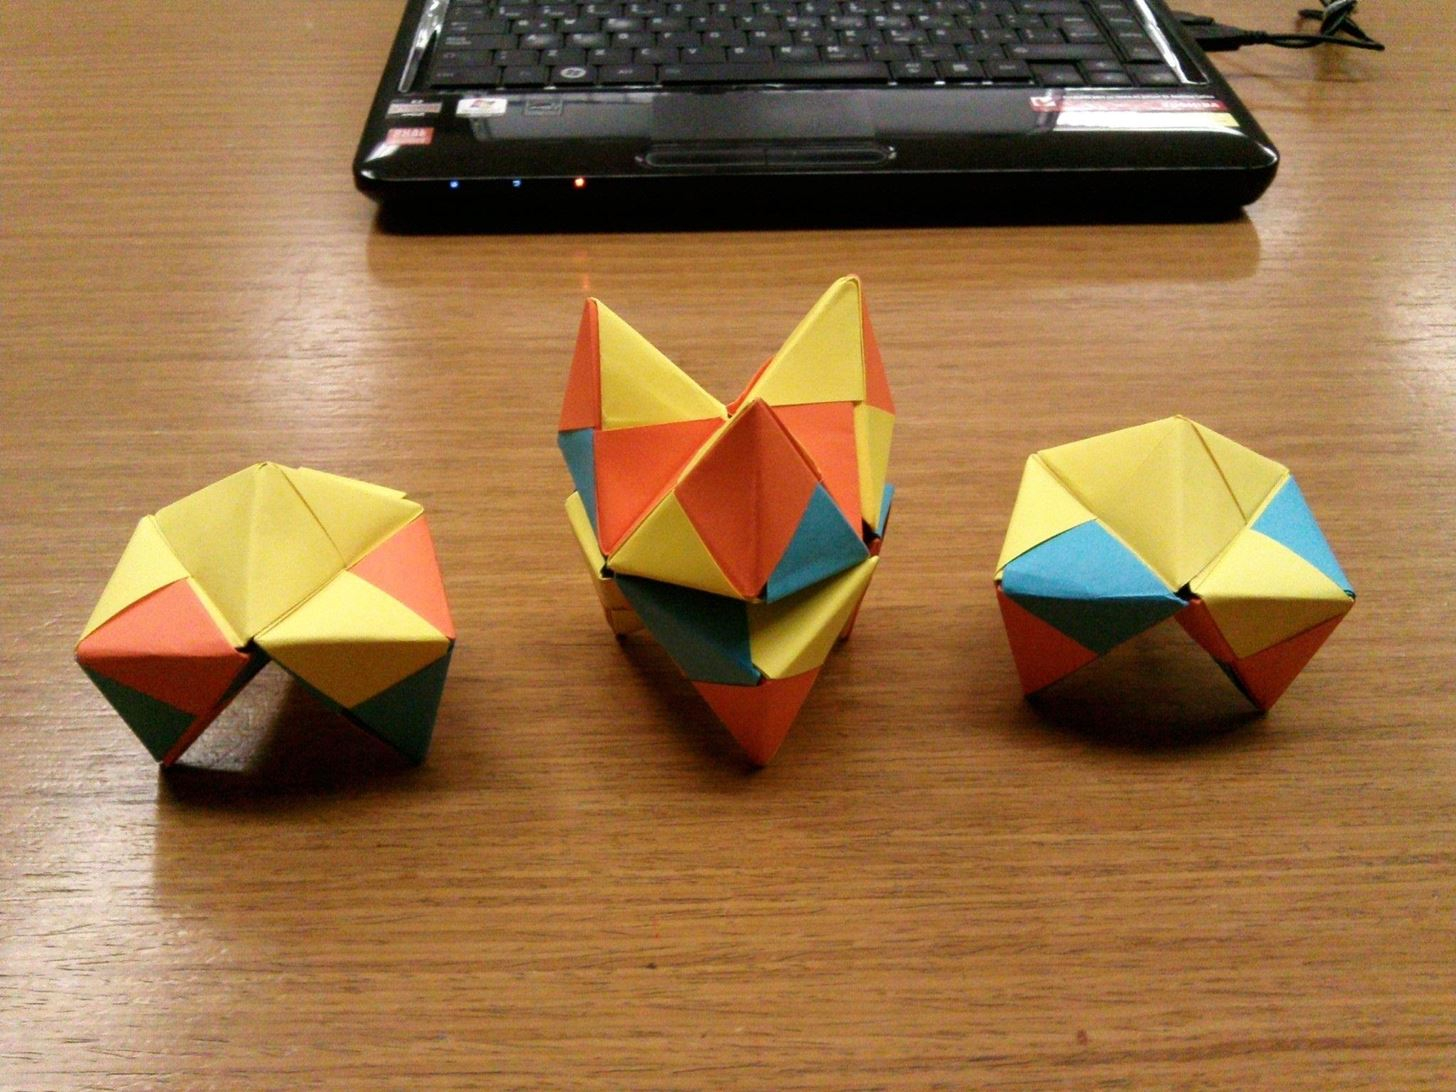 How To Fold Origami Cube Modular Origami How To Make A Cube Octahedron Icosahedron From